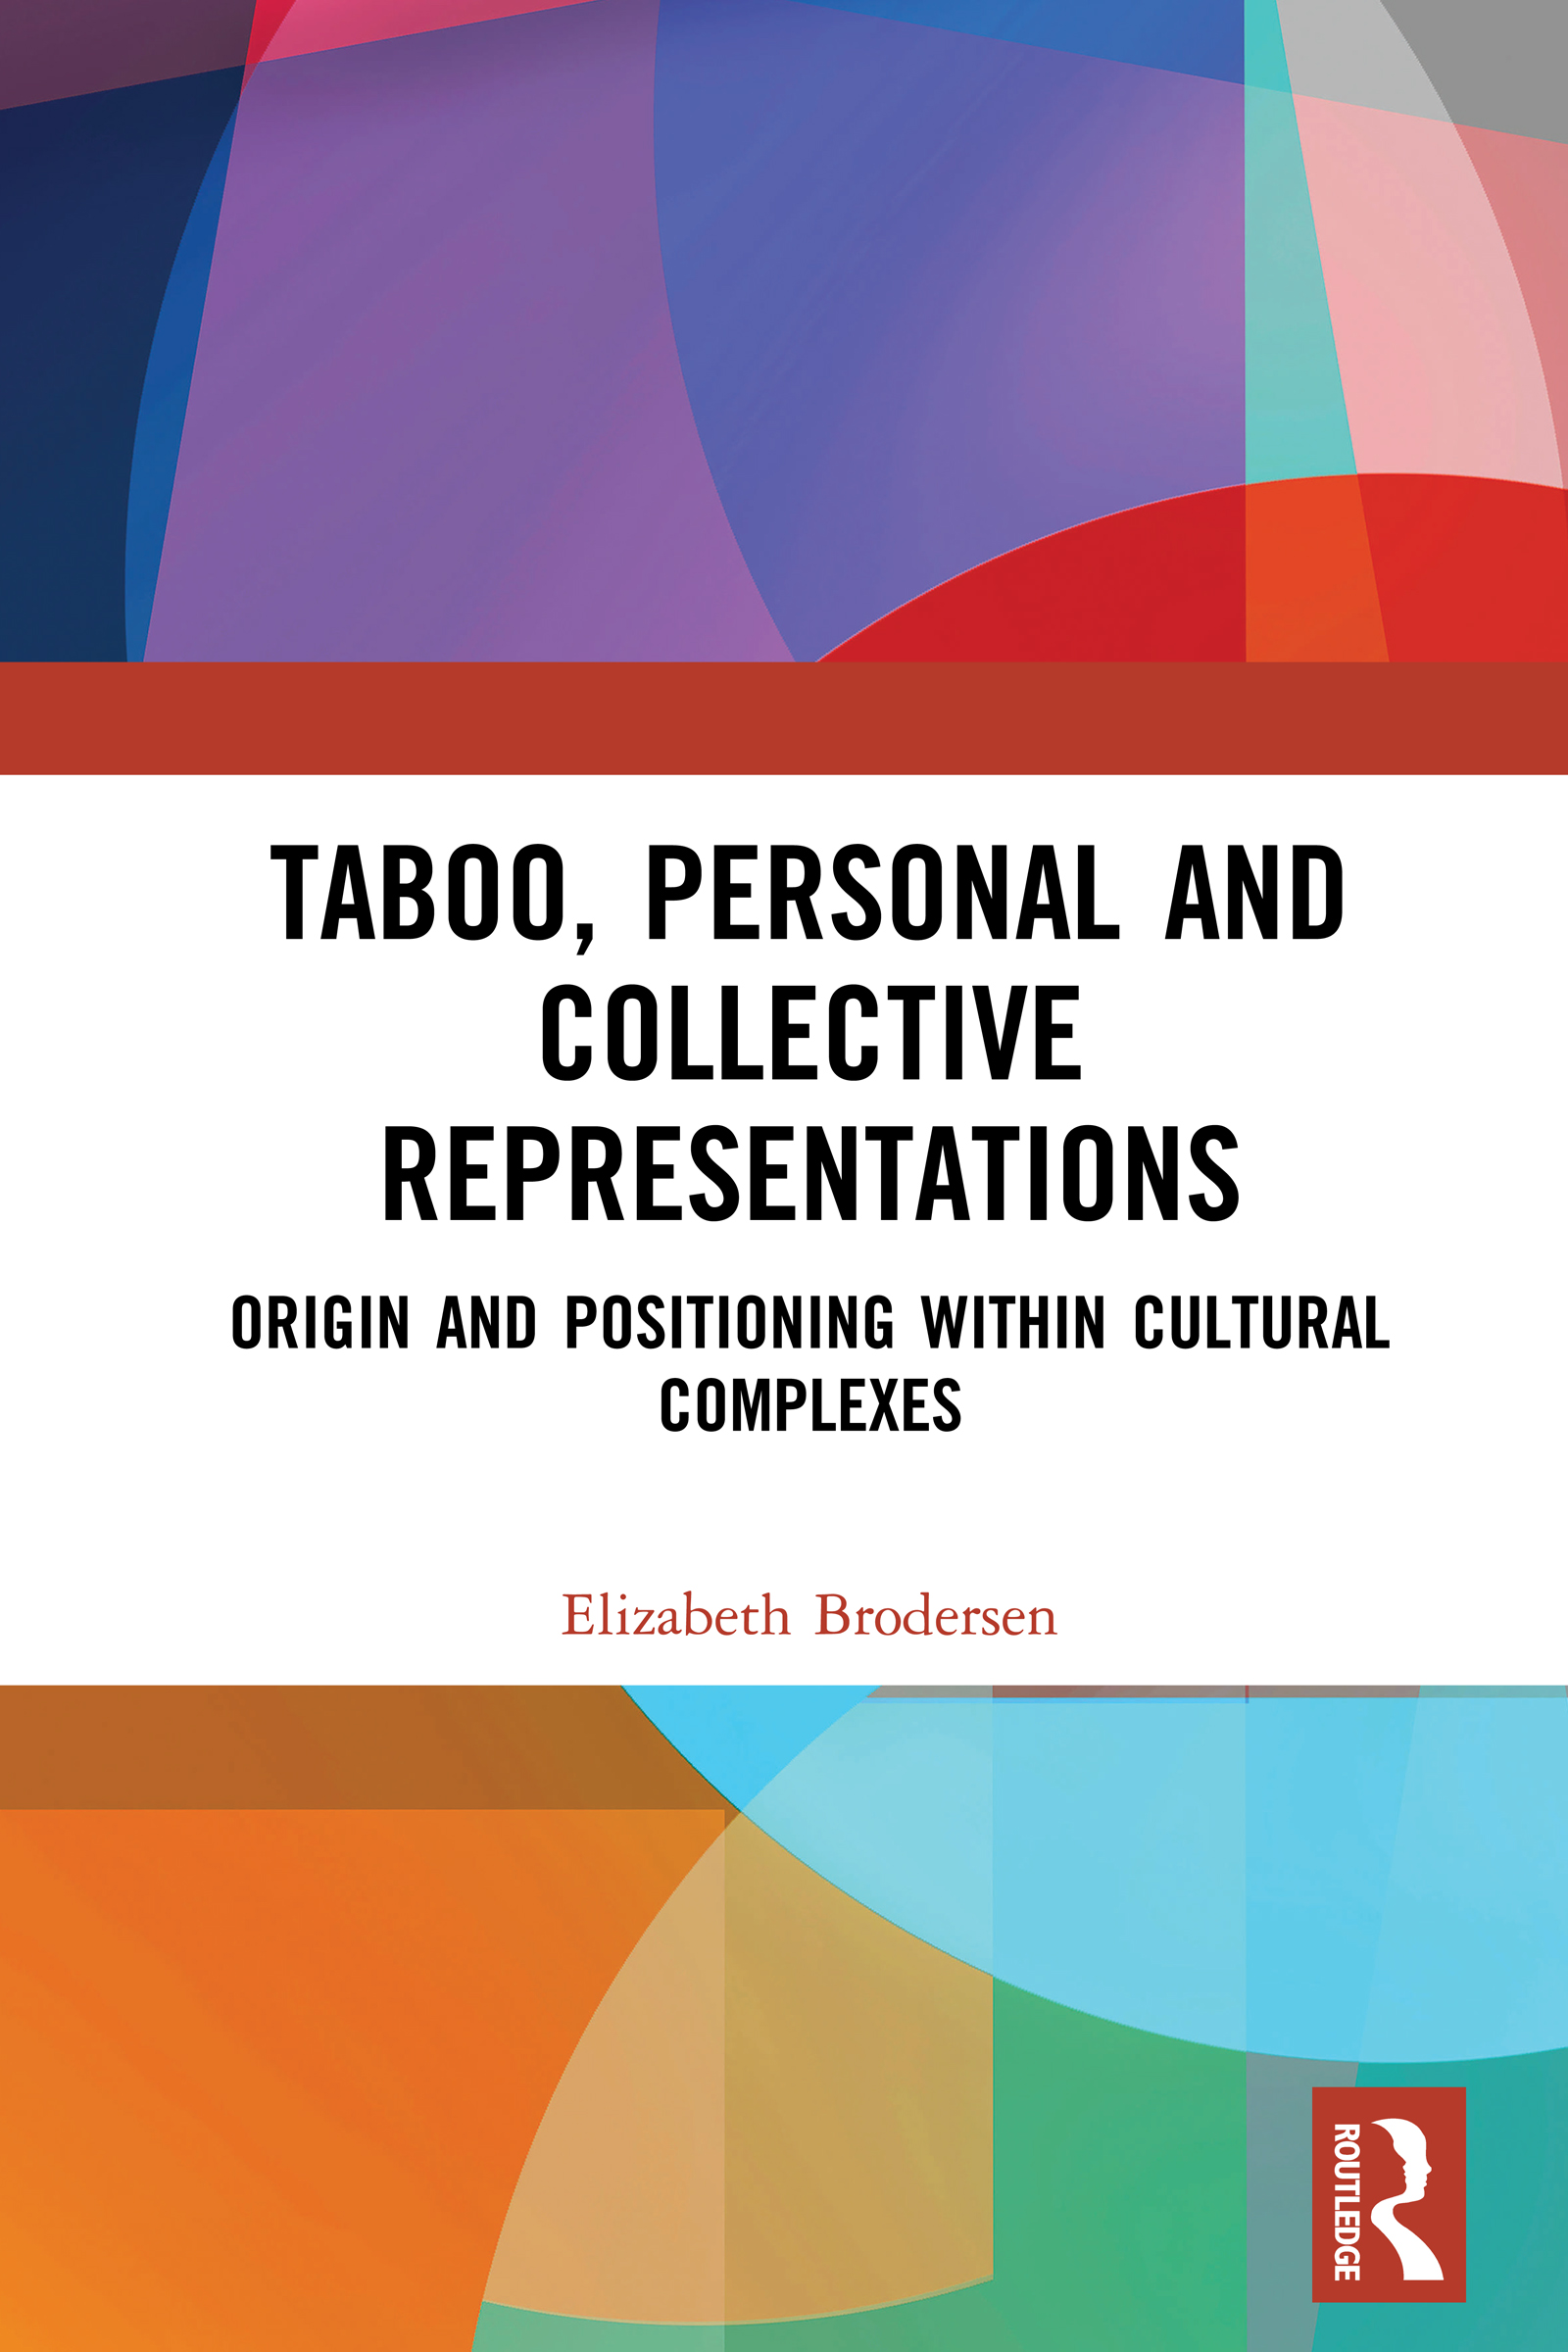 Taboo, Personal and Collective Representations: Origin and Positioning within Cultural Complexes book cover